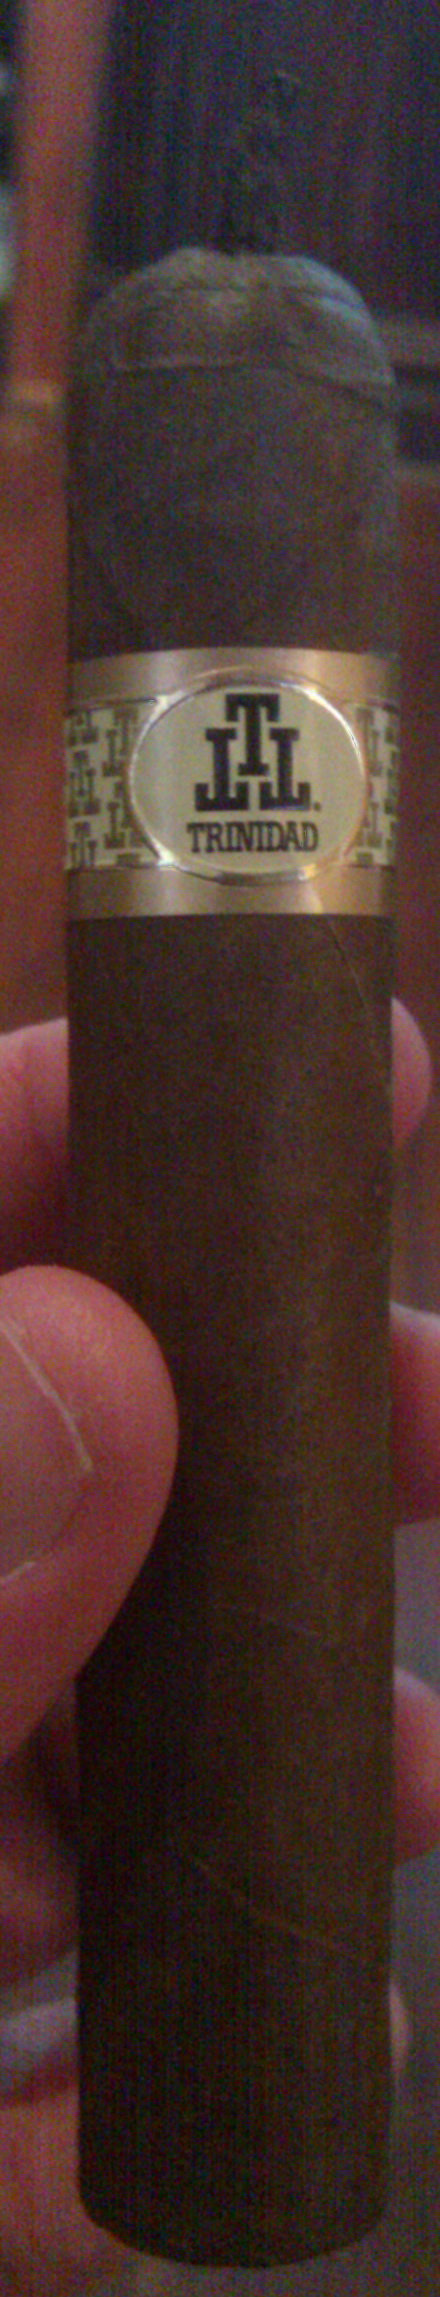 Cigar Review: Trinidad Habana Reserve